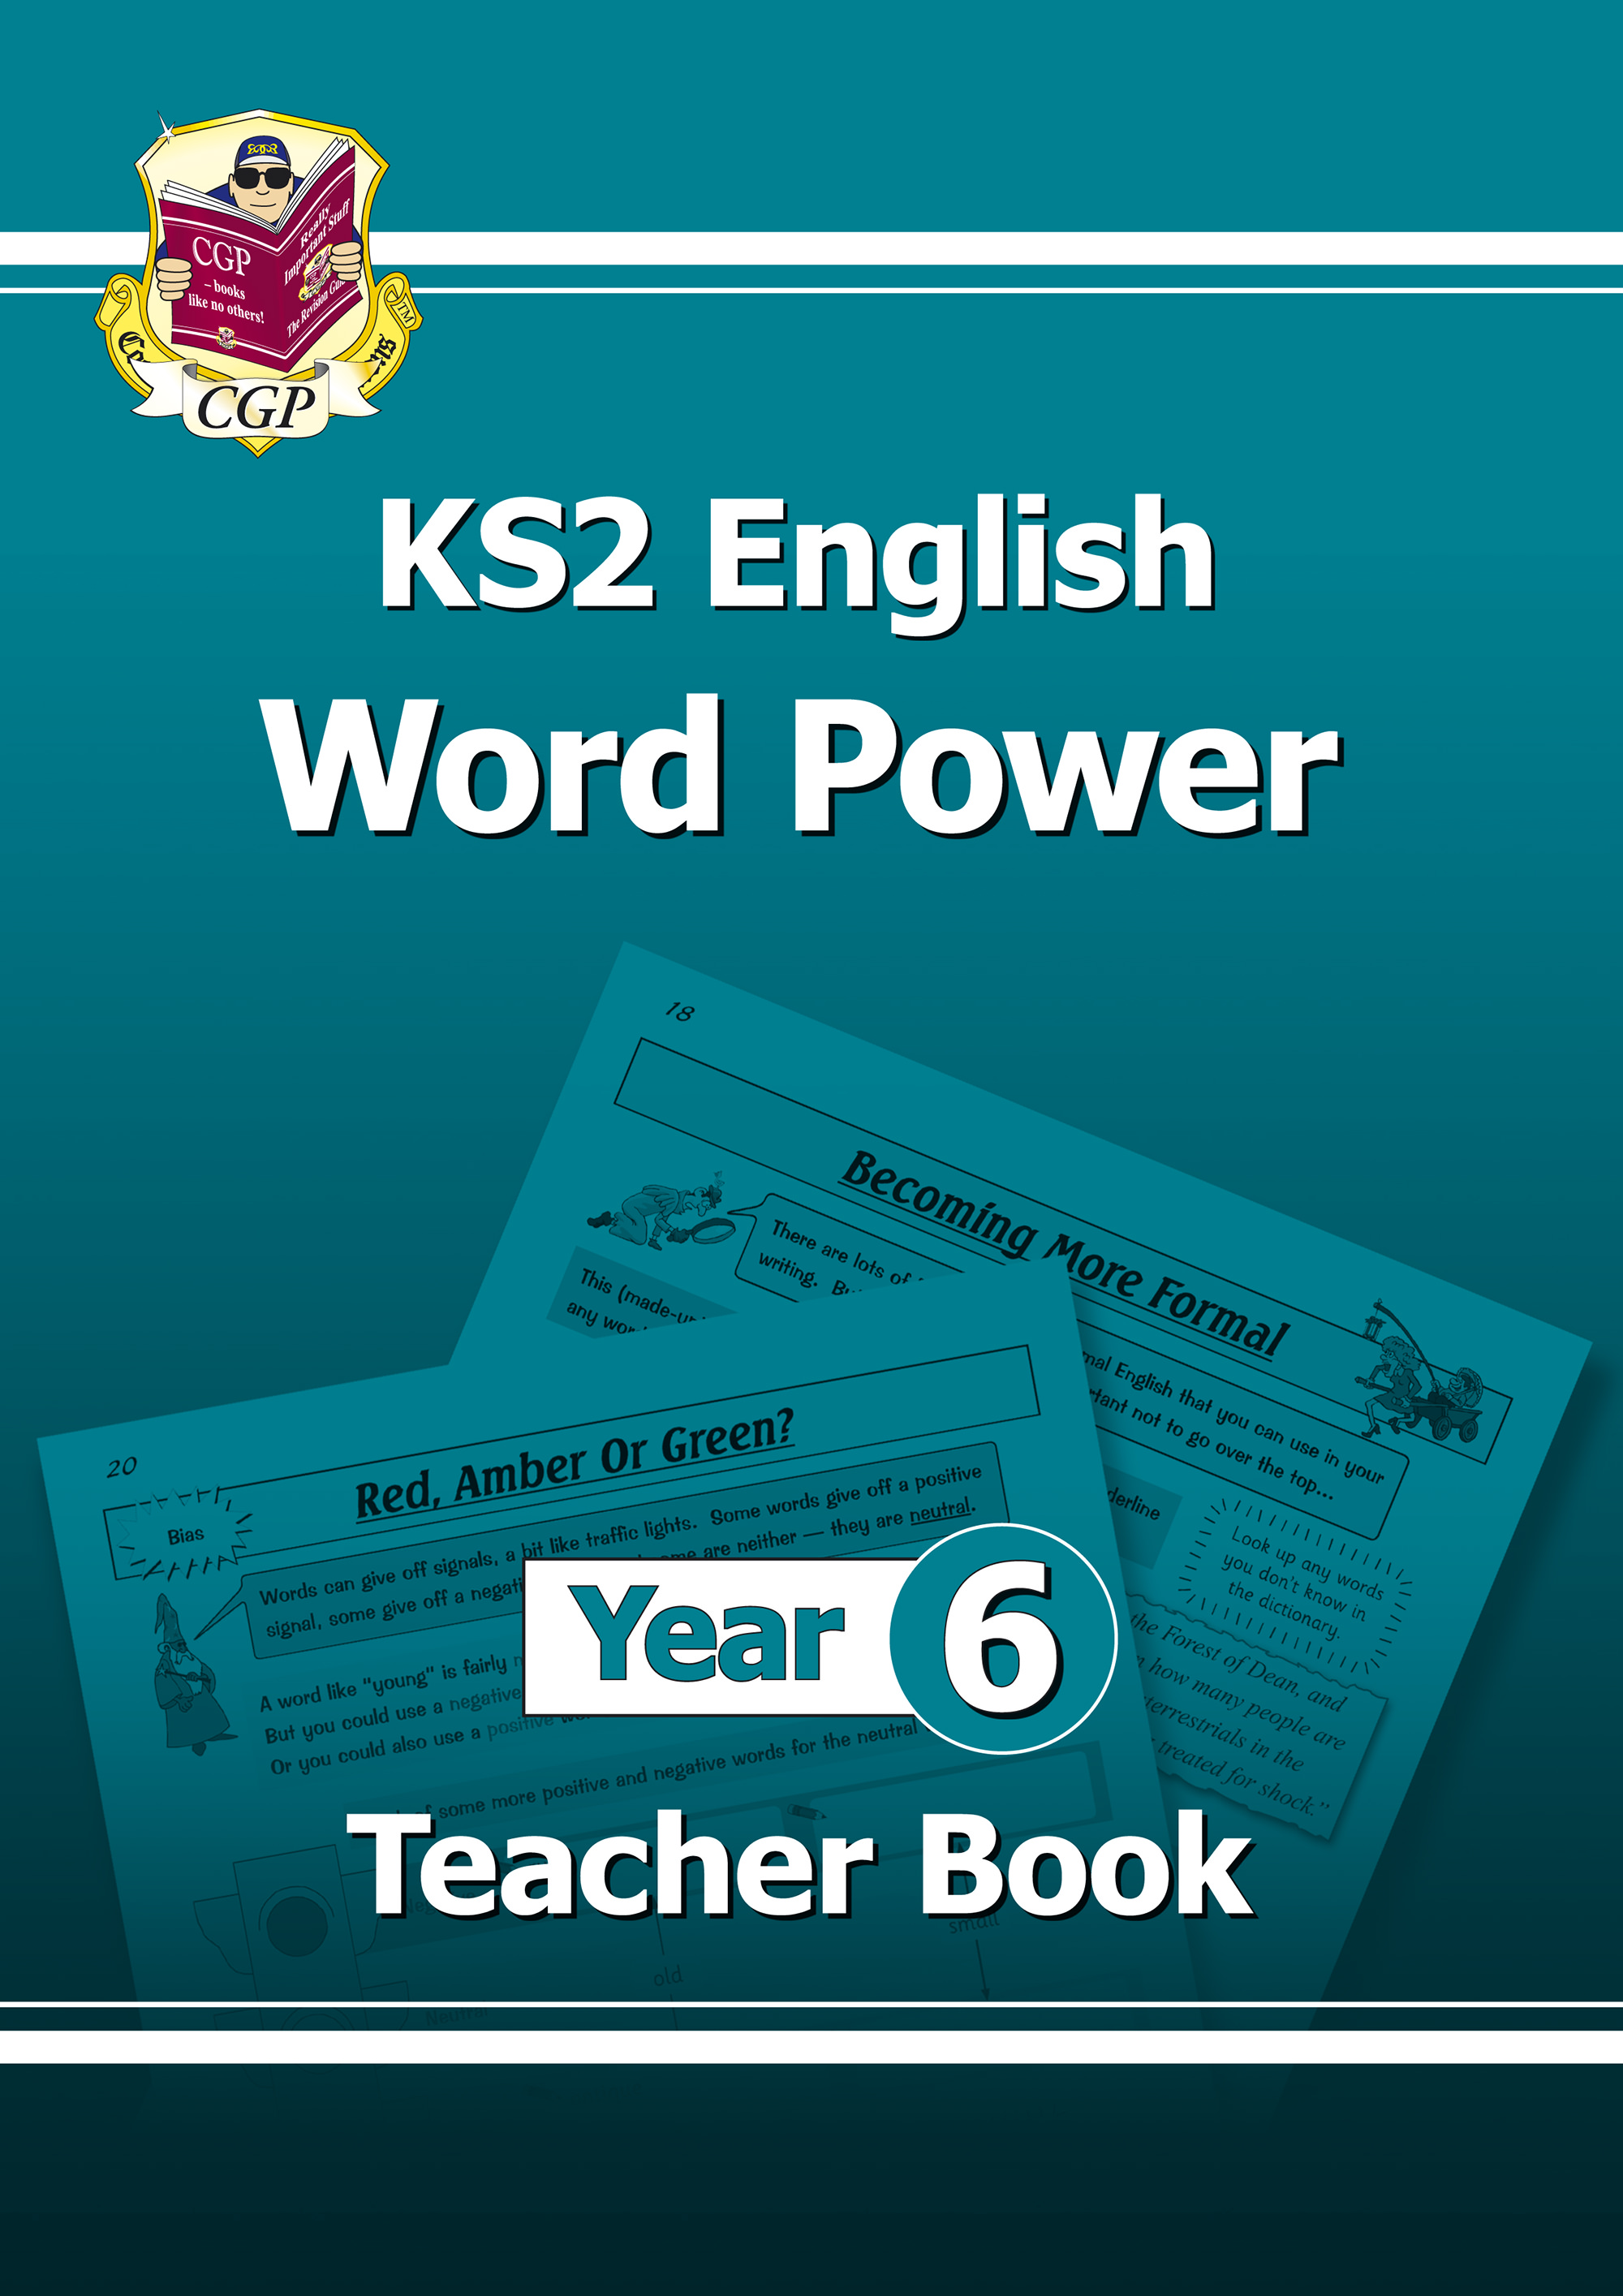 E6WPT21 - KS2 English Word Power: Teacher Book - Year 6